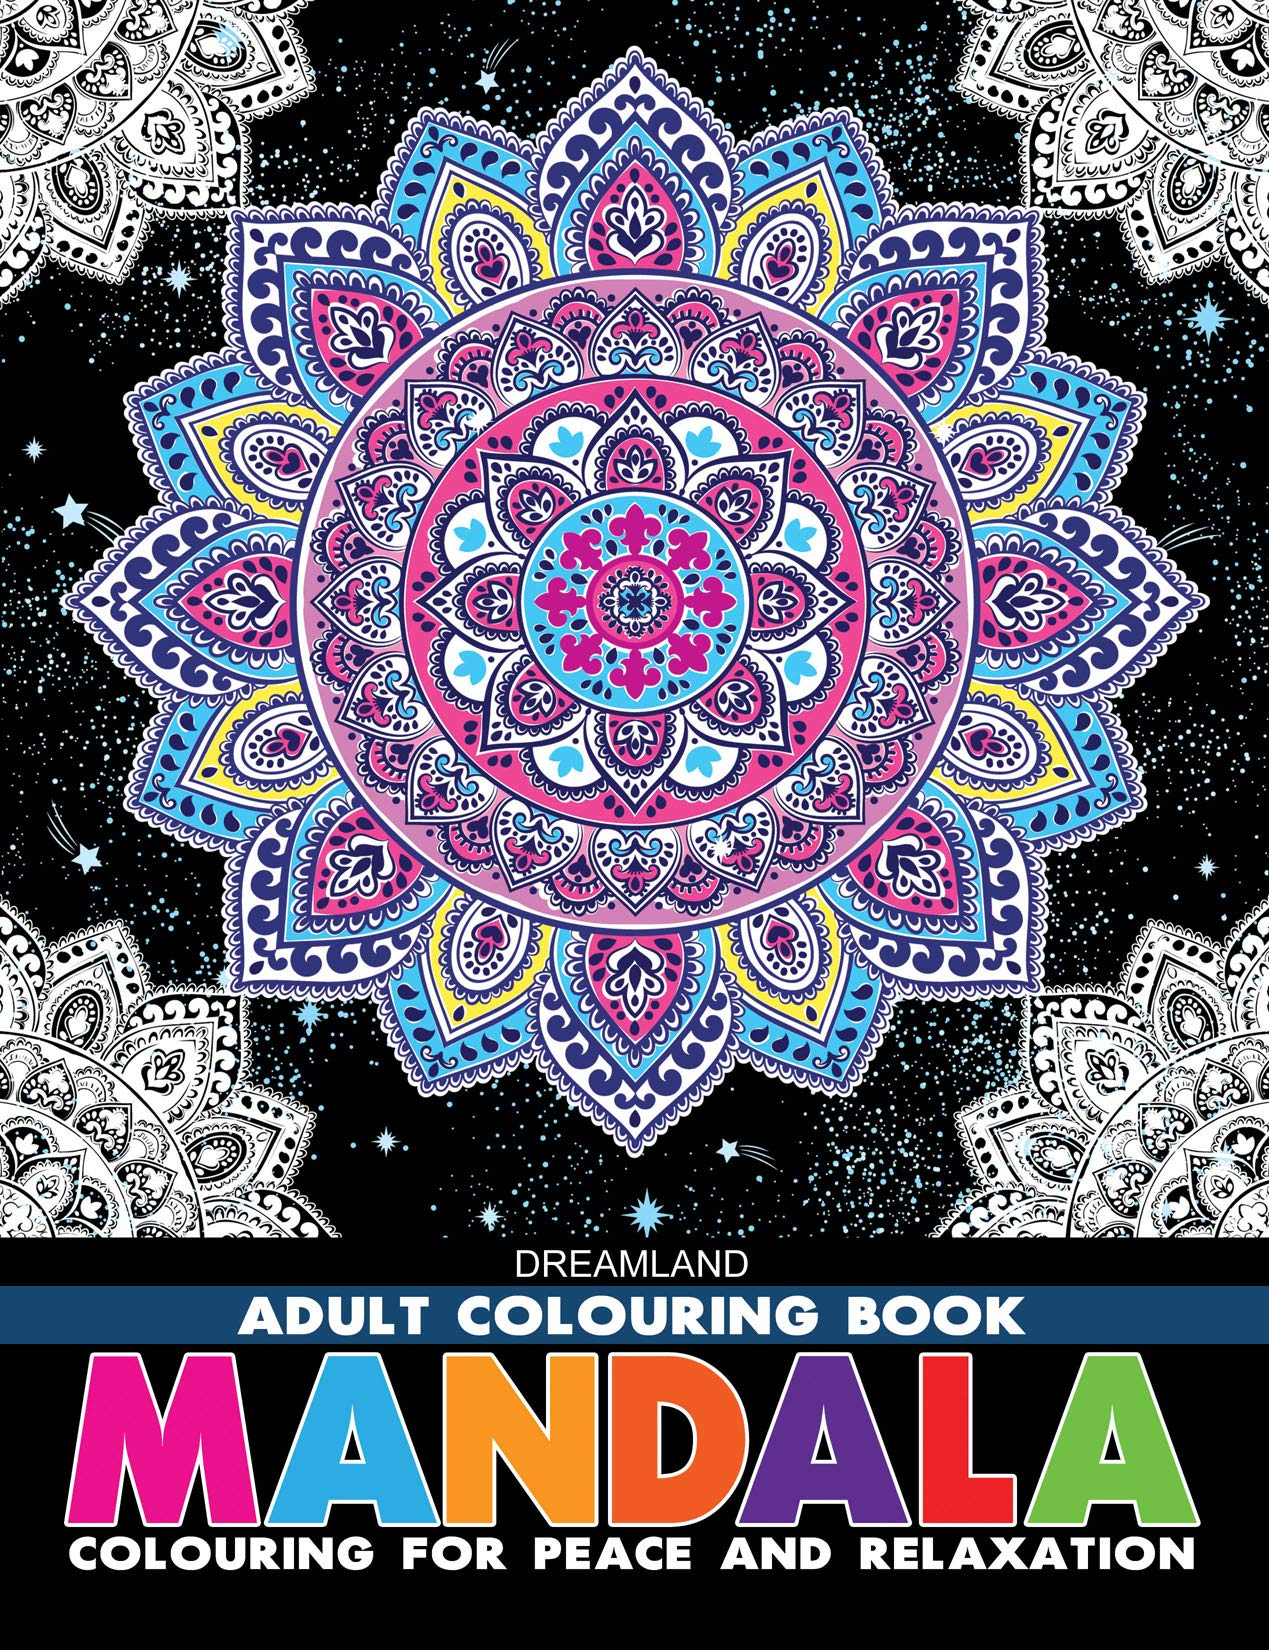 Mandala - Adult Colouring Book for Peace & Relaxation